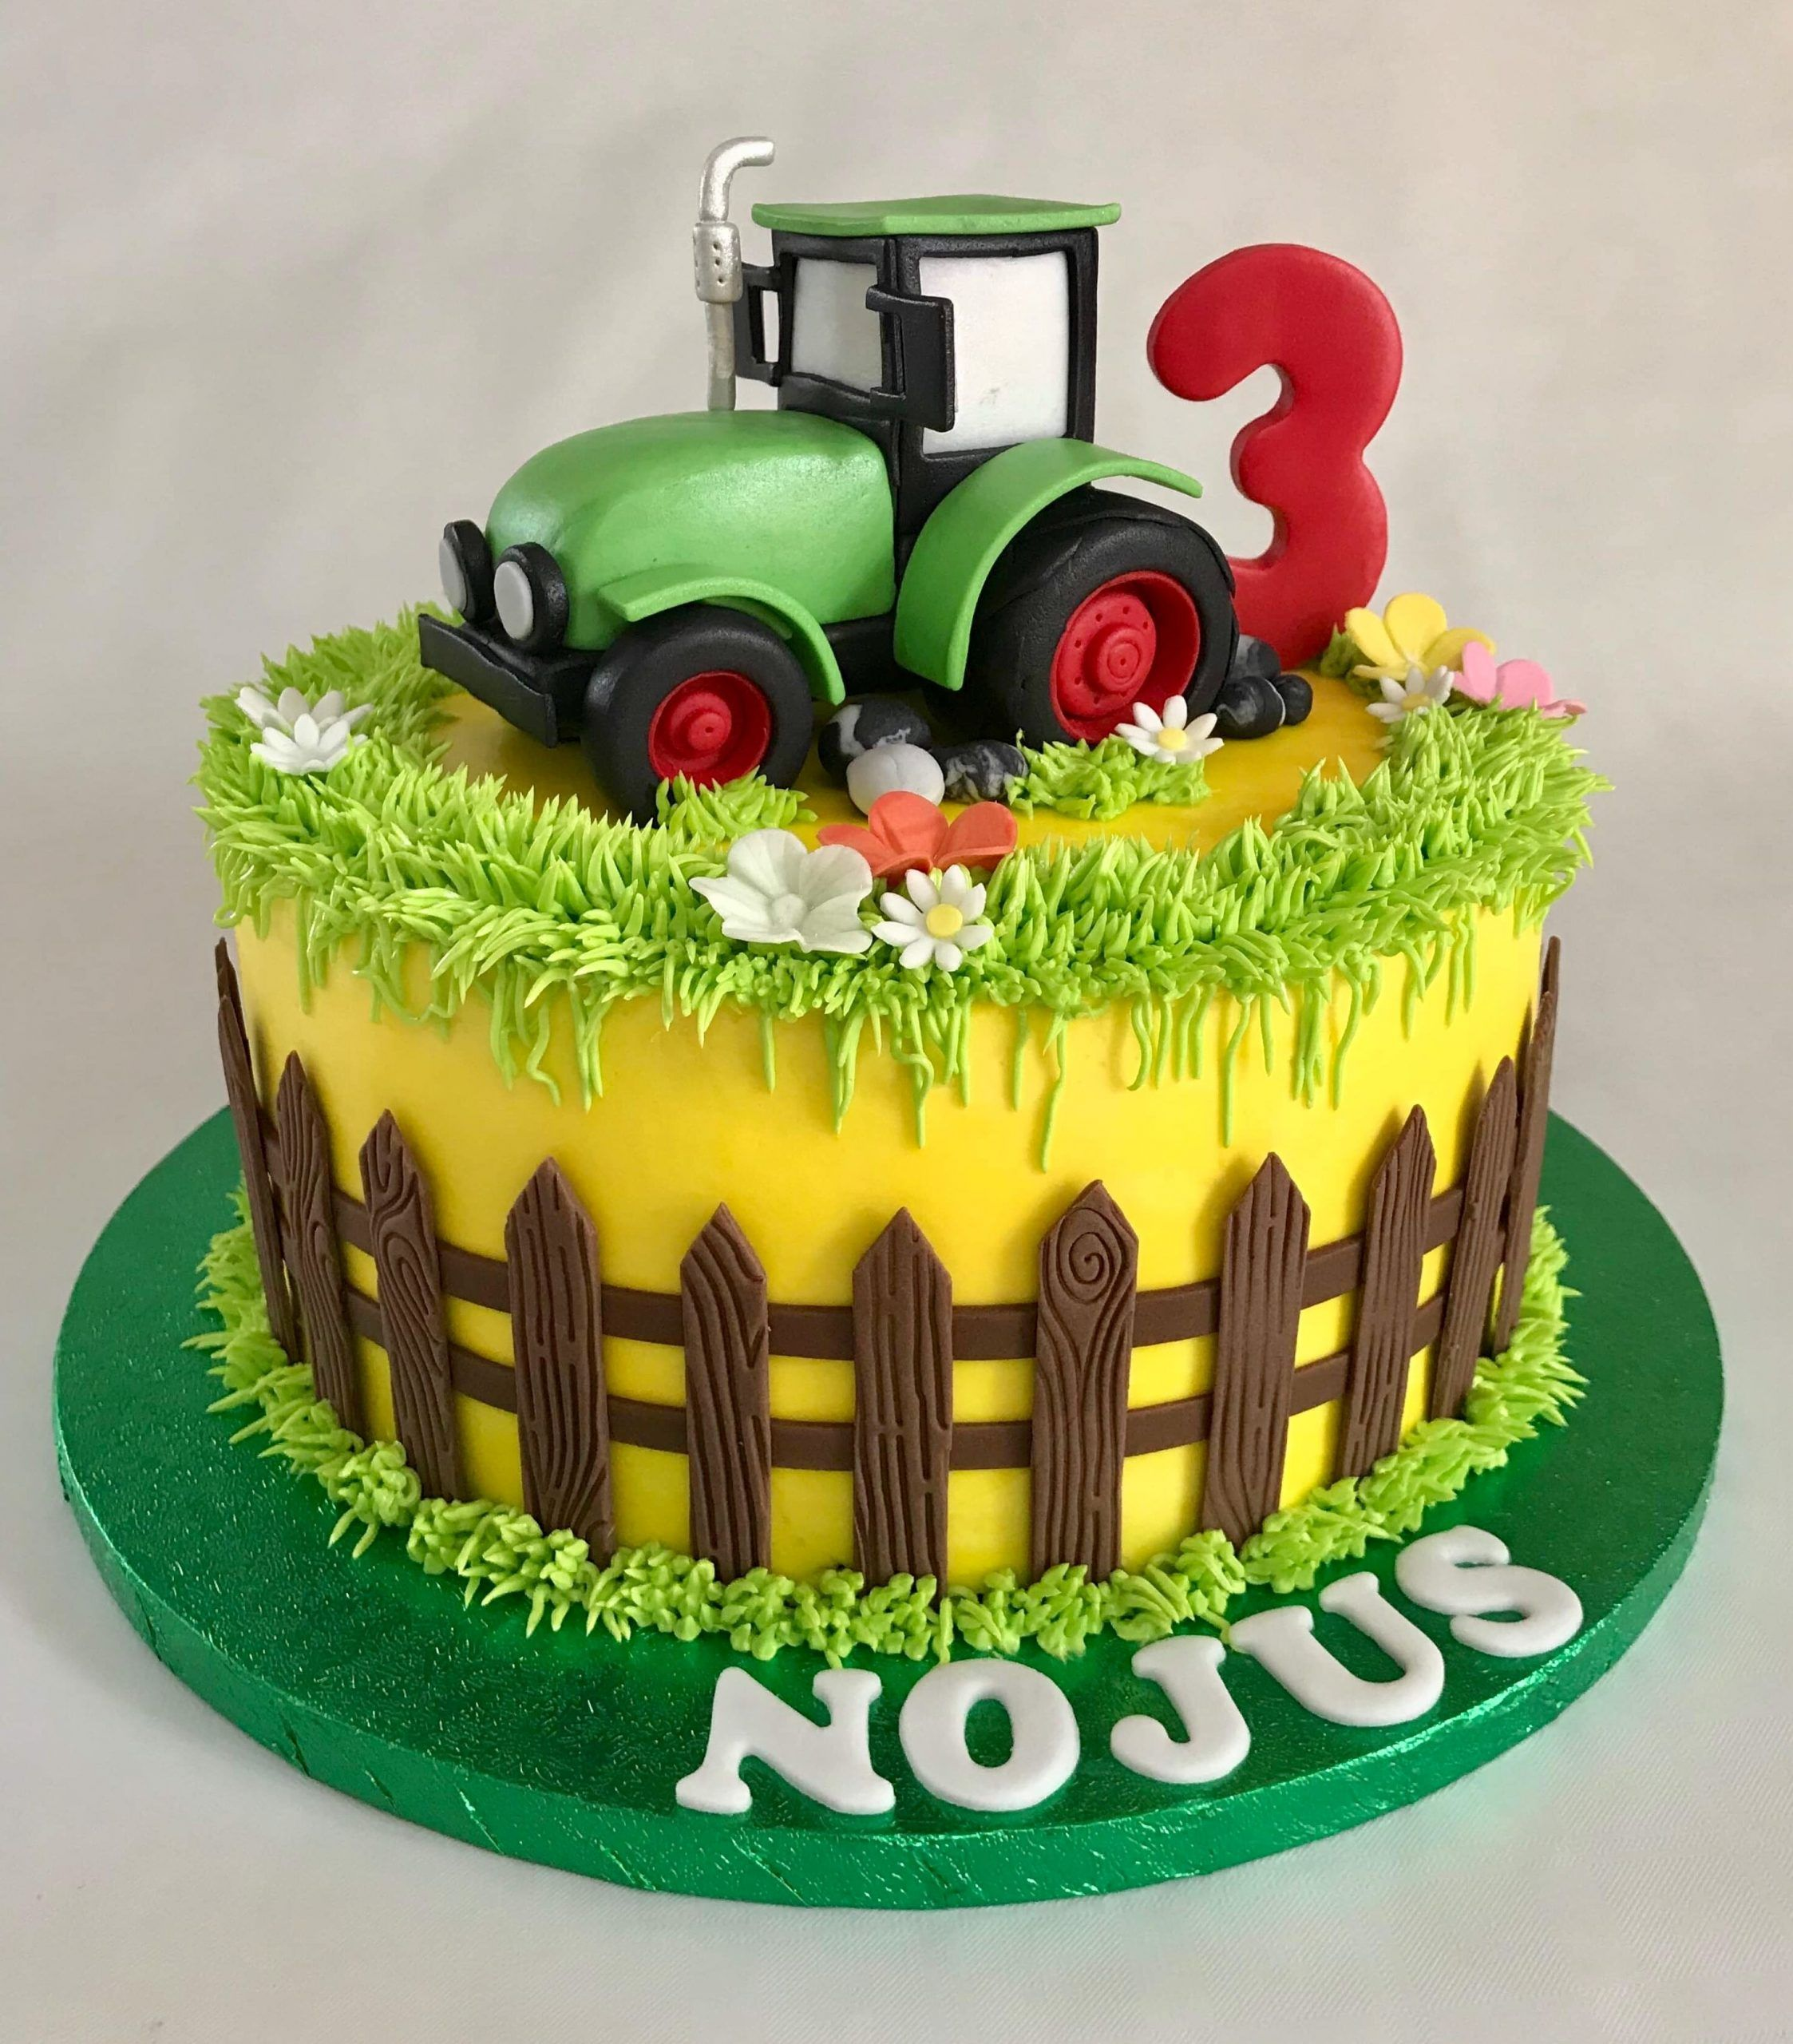 Farm Tractor Birthday Cake Birthday Cake Farm Tractor In 2020 Tractor Birthday Cakes Farm Birthday Cakes Twin Birthday Cakes